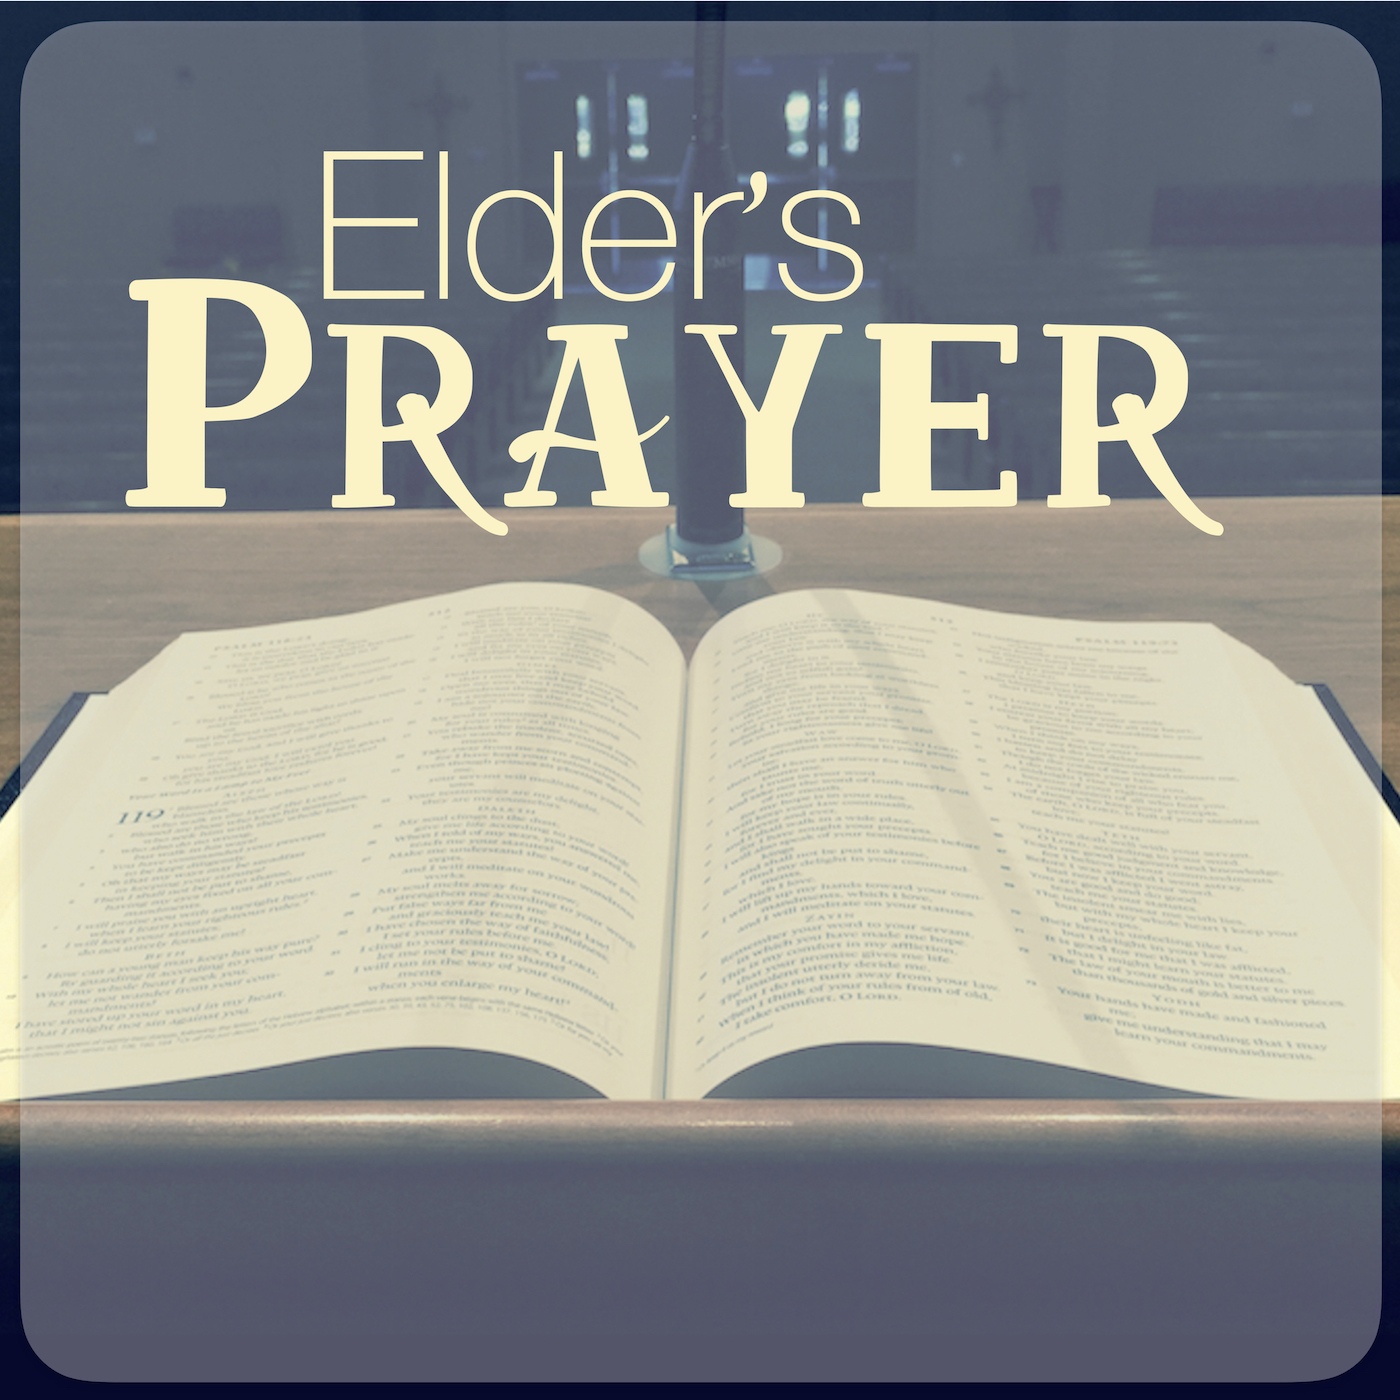 Elder's Prayer